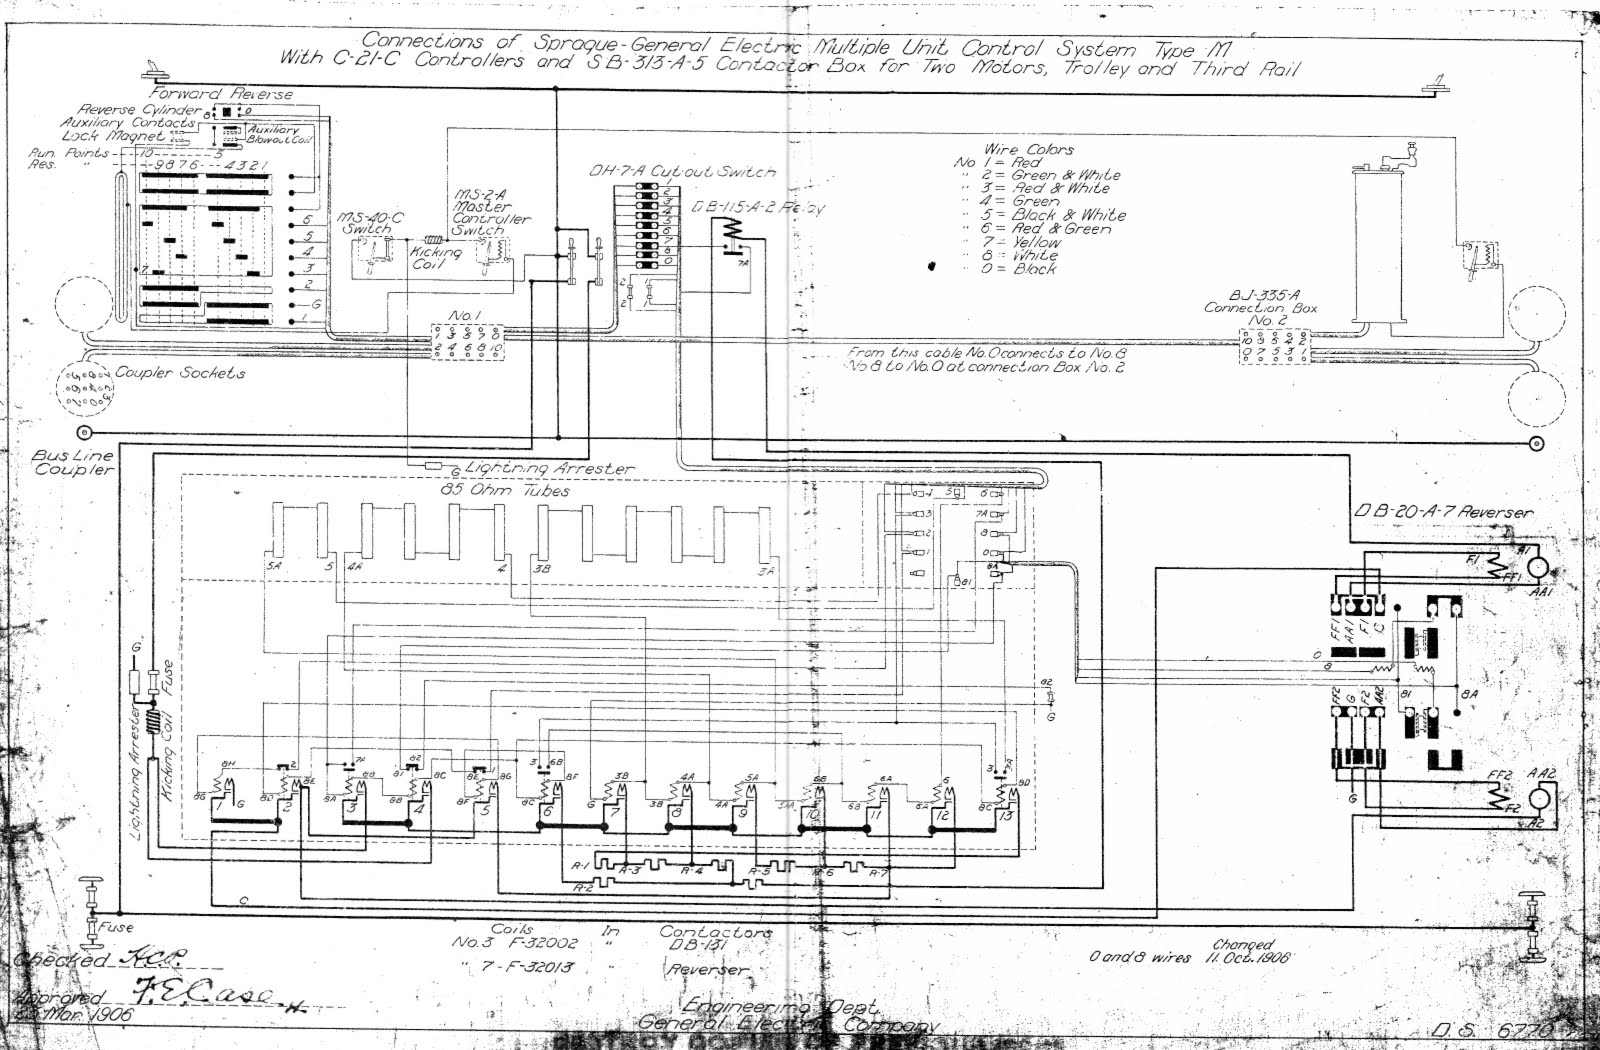 1977 toyota pickup fuse diagram imageresizertool com 1979 Harley-Davidson Wiring Diagram Tata Nano Electrical Wiring Diagram